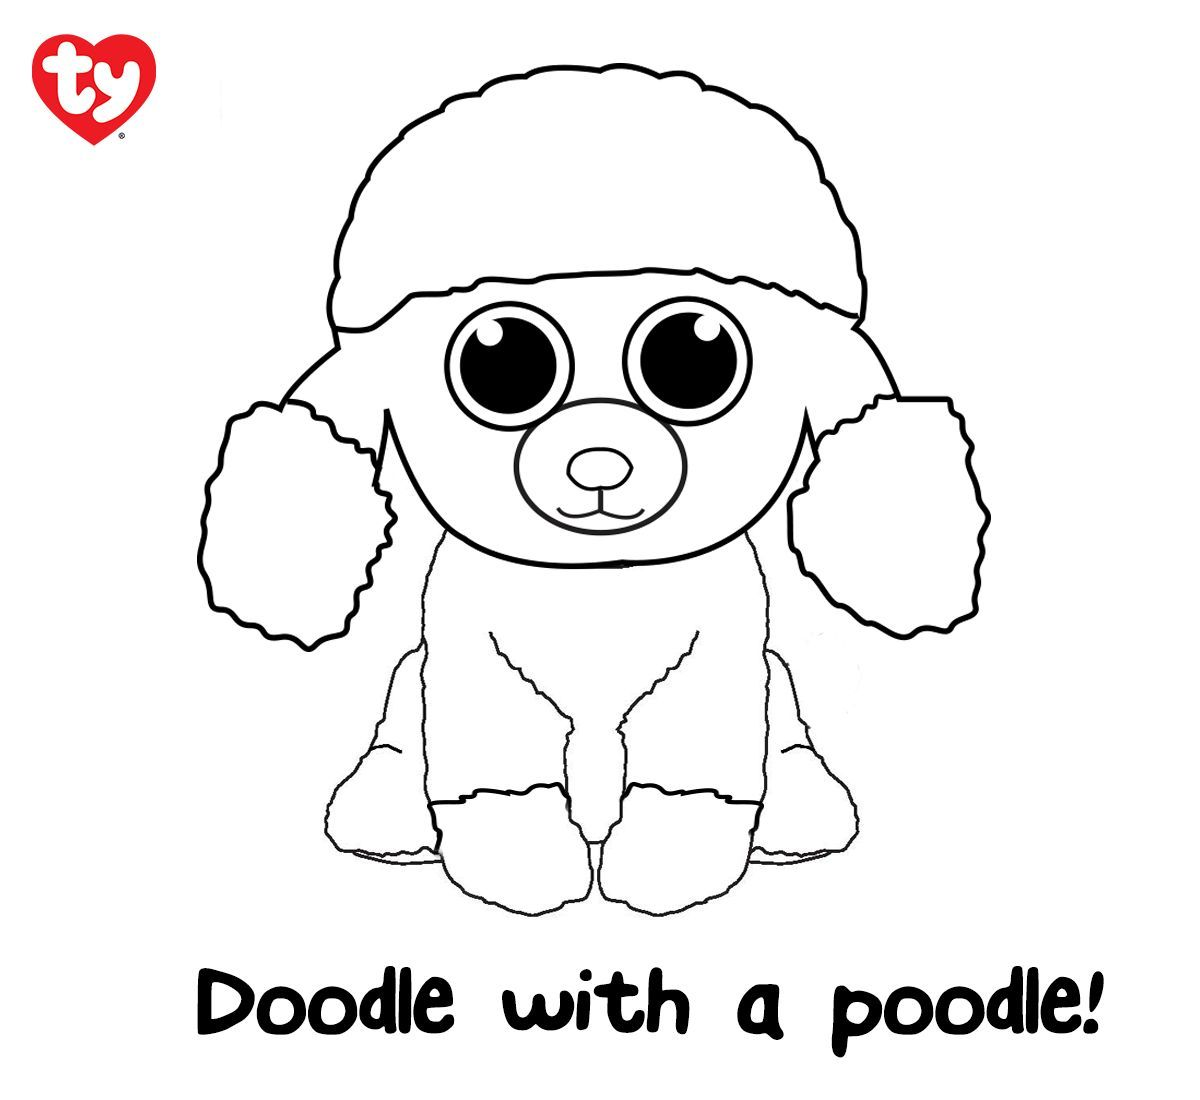 Can you give Rainbow the poodle some color httpbitly2moiEoQ